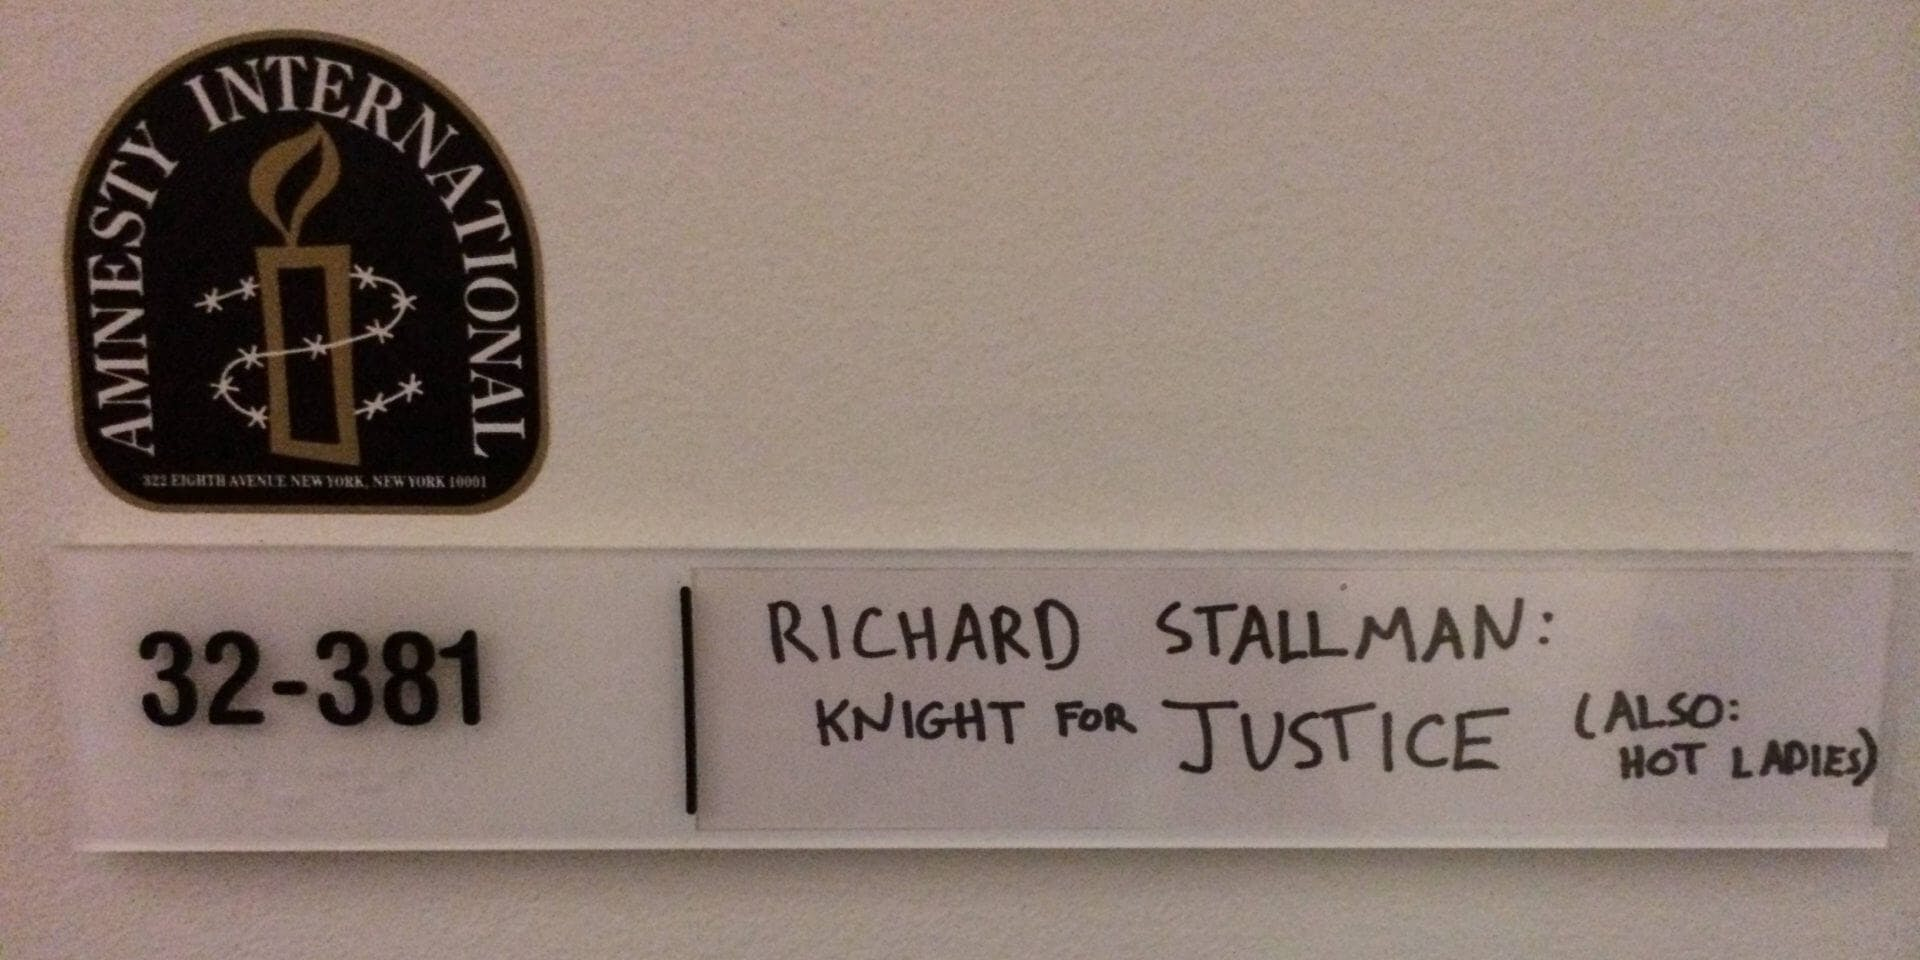 A door sign for Richard Stallman reads 'Knight for justice (also: hot ladies)